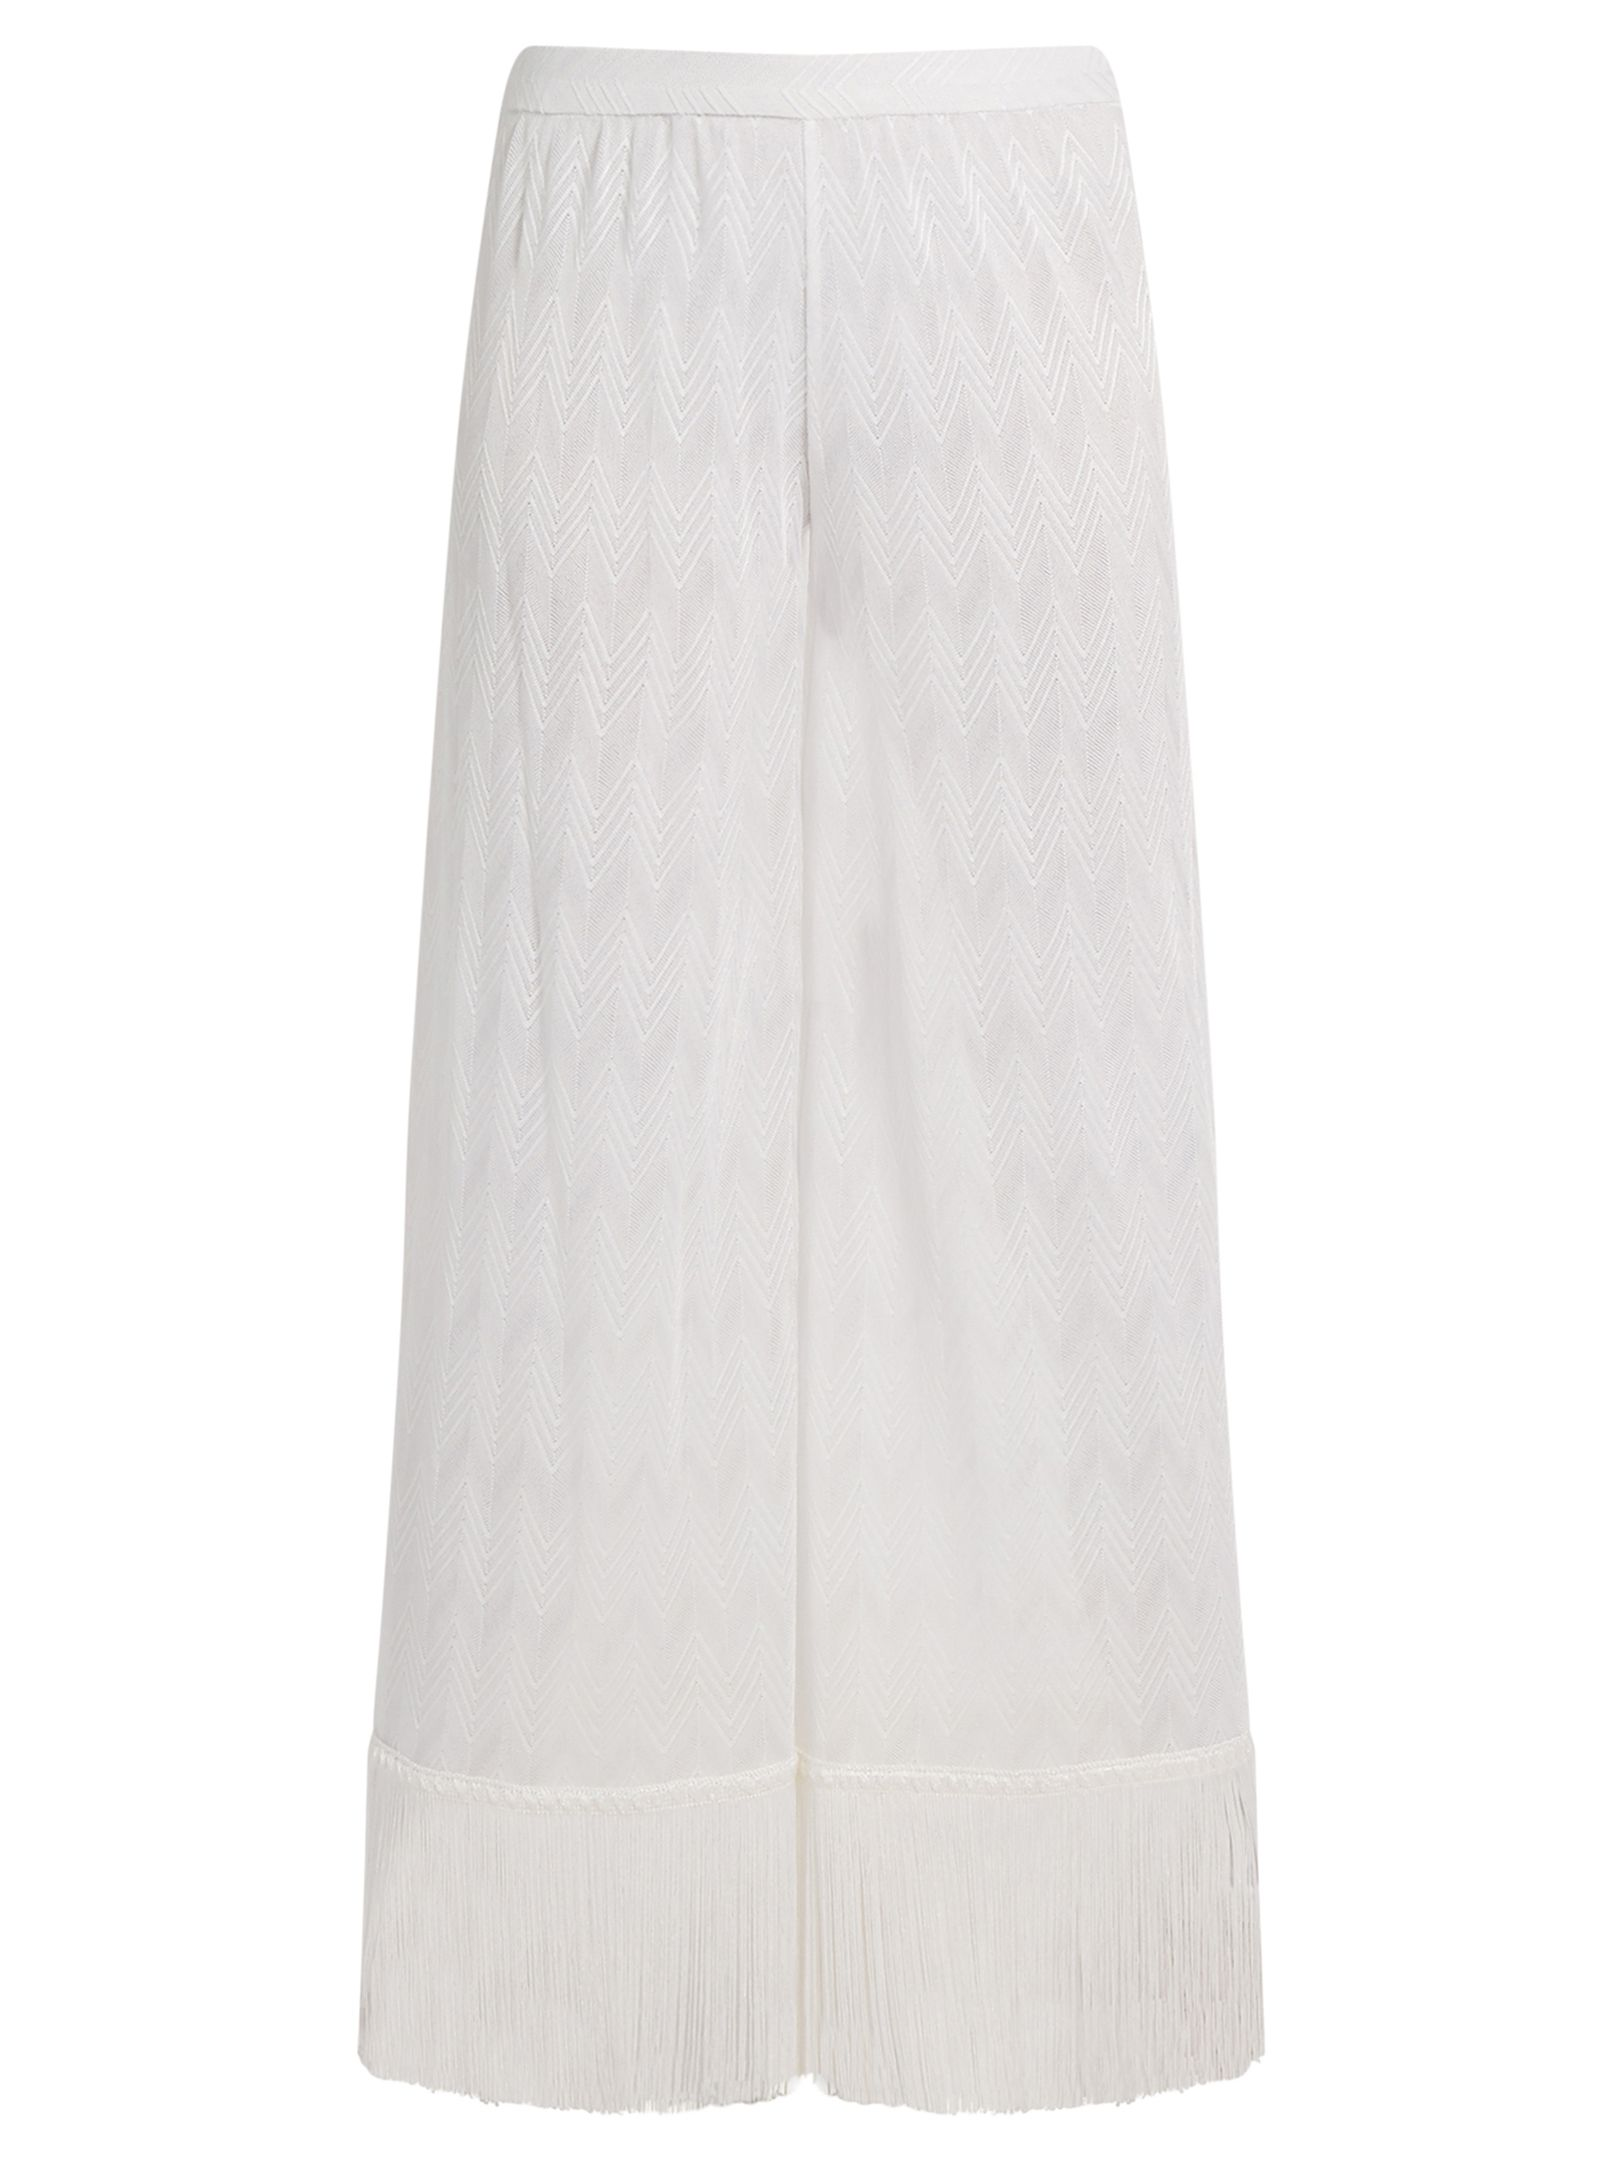 Click here to buy Missoni Mare Zigzag-knit fringed-hem trousers at MATCHESFASHION.COM